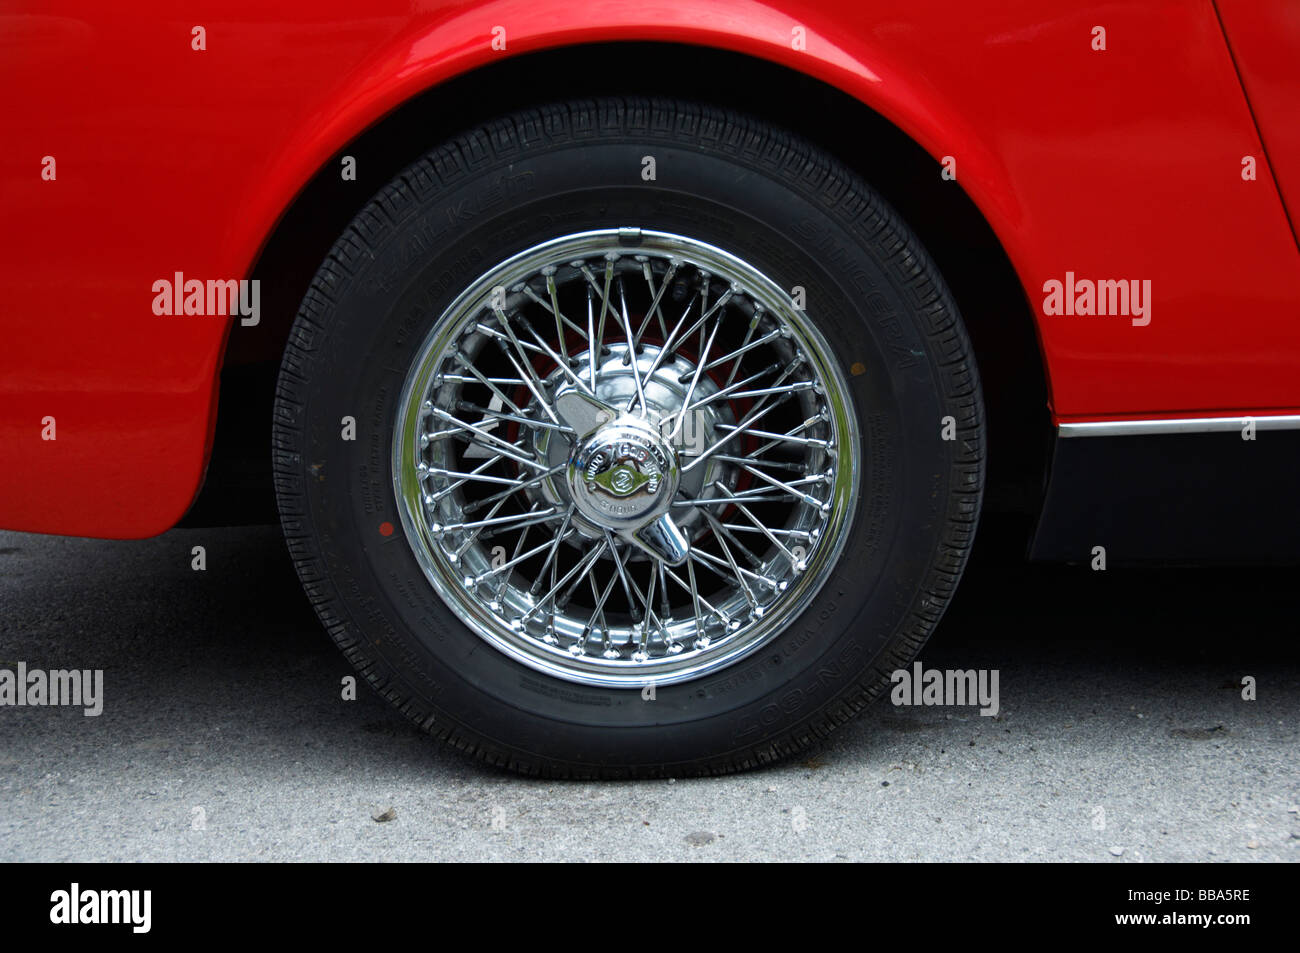 Tire With Spoke Rims On Classic Car Stock Photo Royalty Free